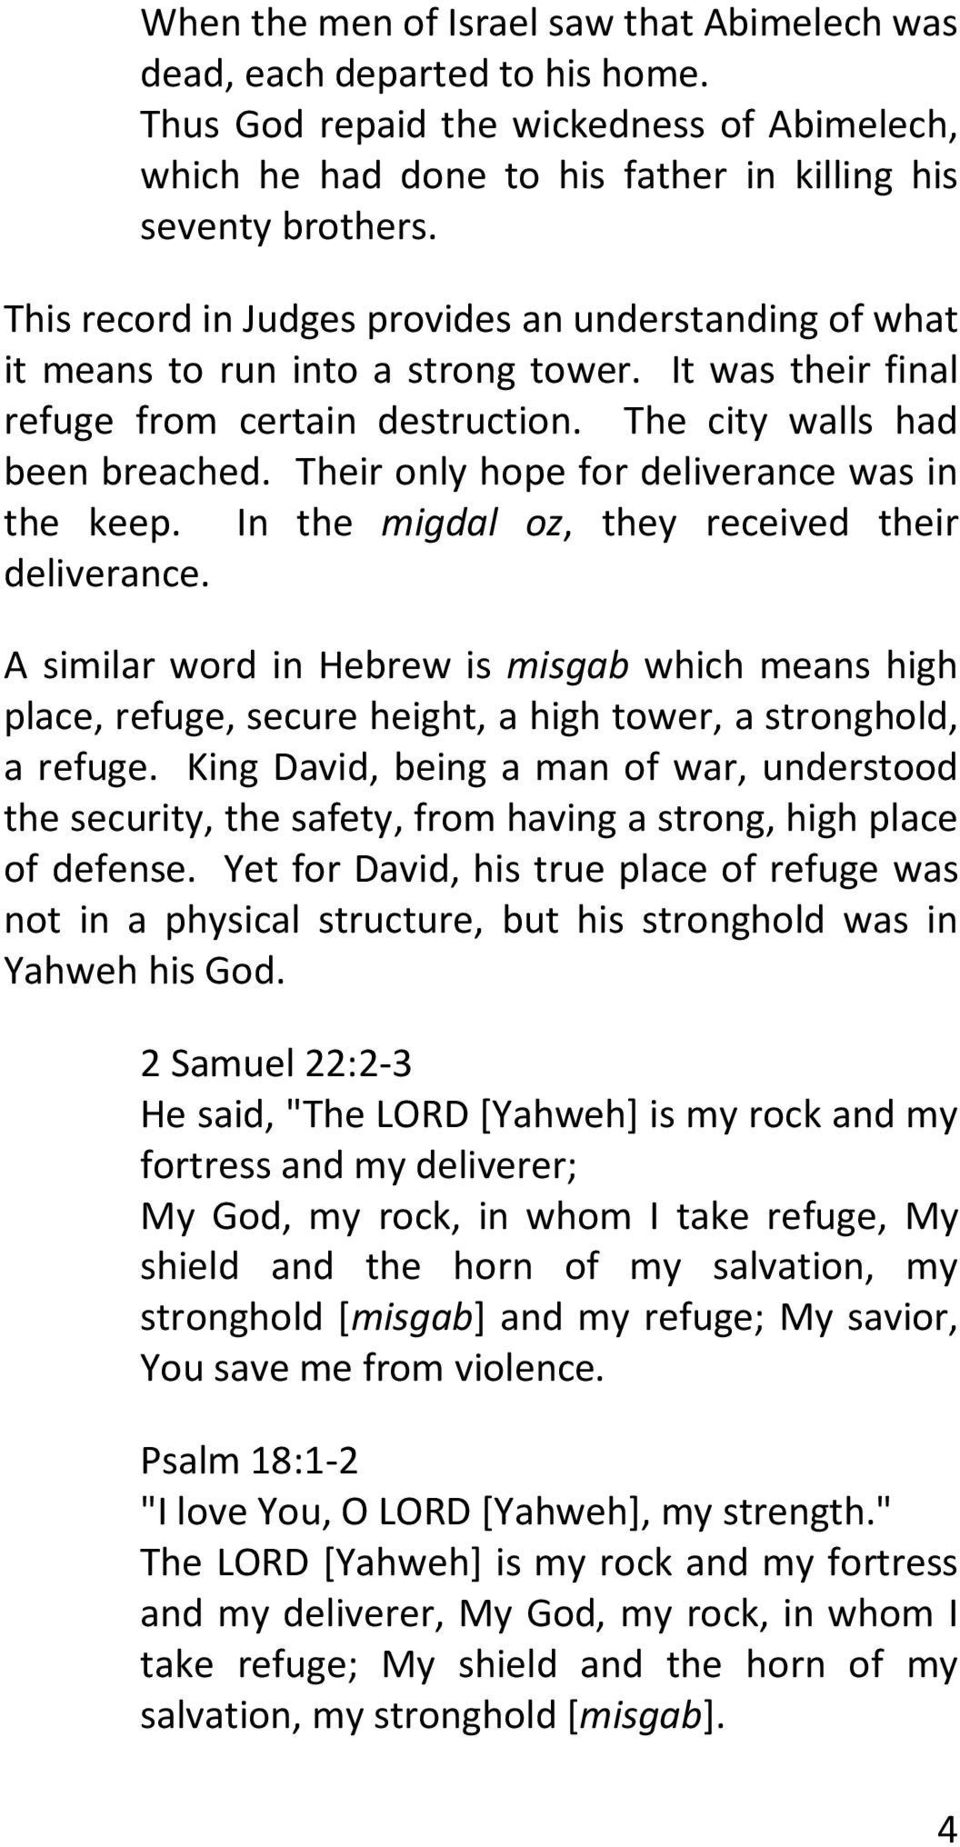 The Name of Yahweh is a Strong Tower - PDF